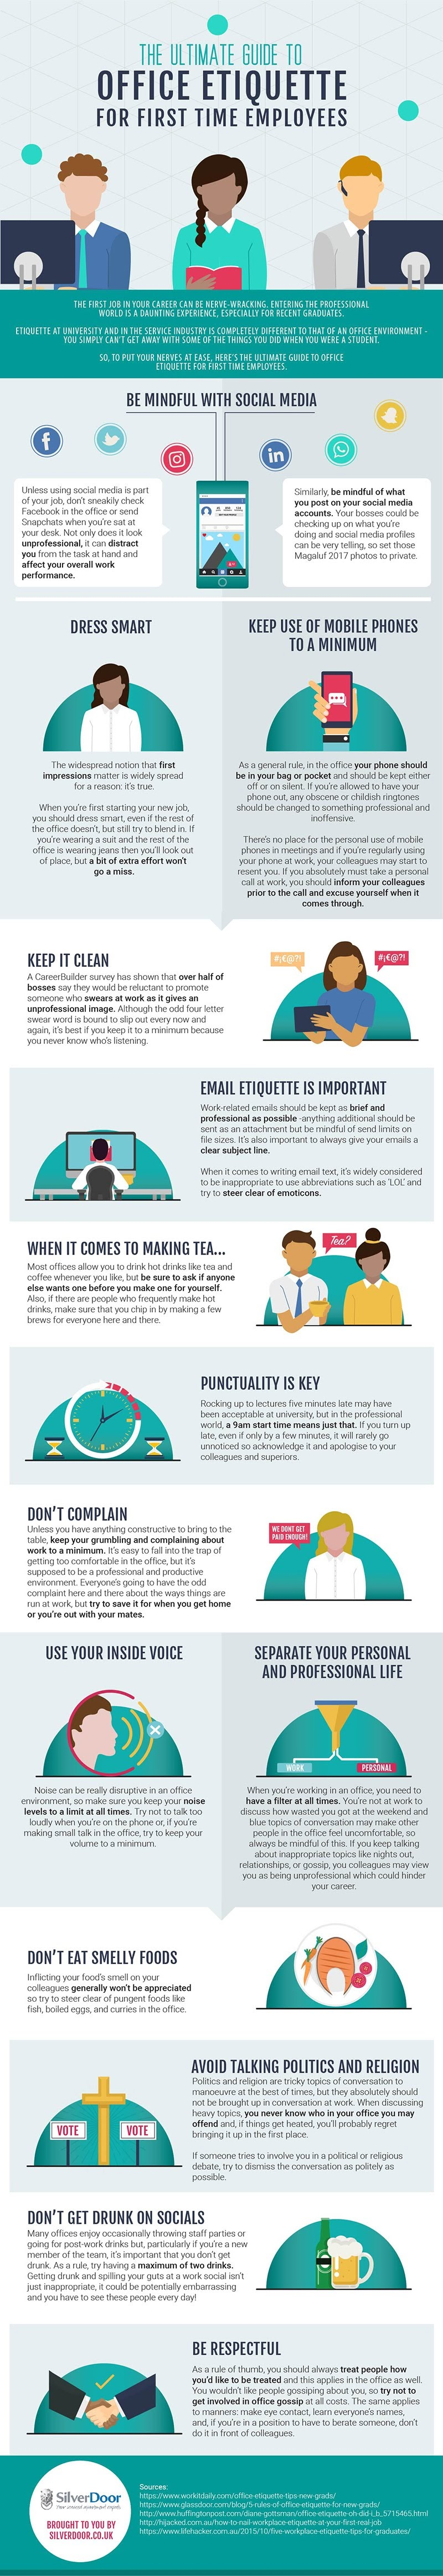 The Ultimate Guide To Office Etiquette For First Time Employees - #Infographic